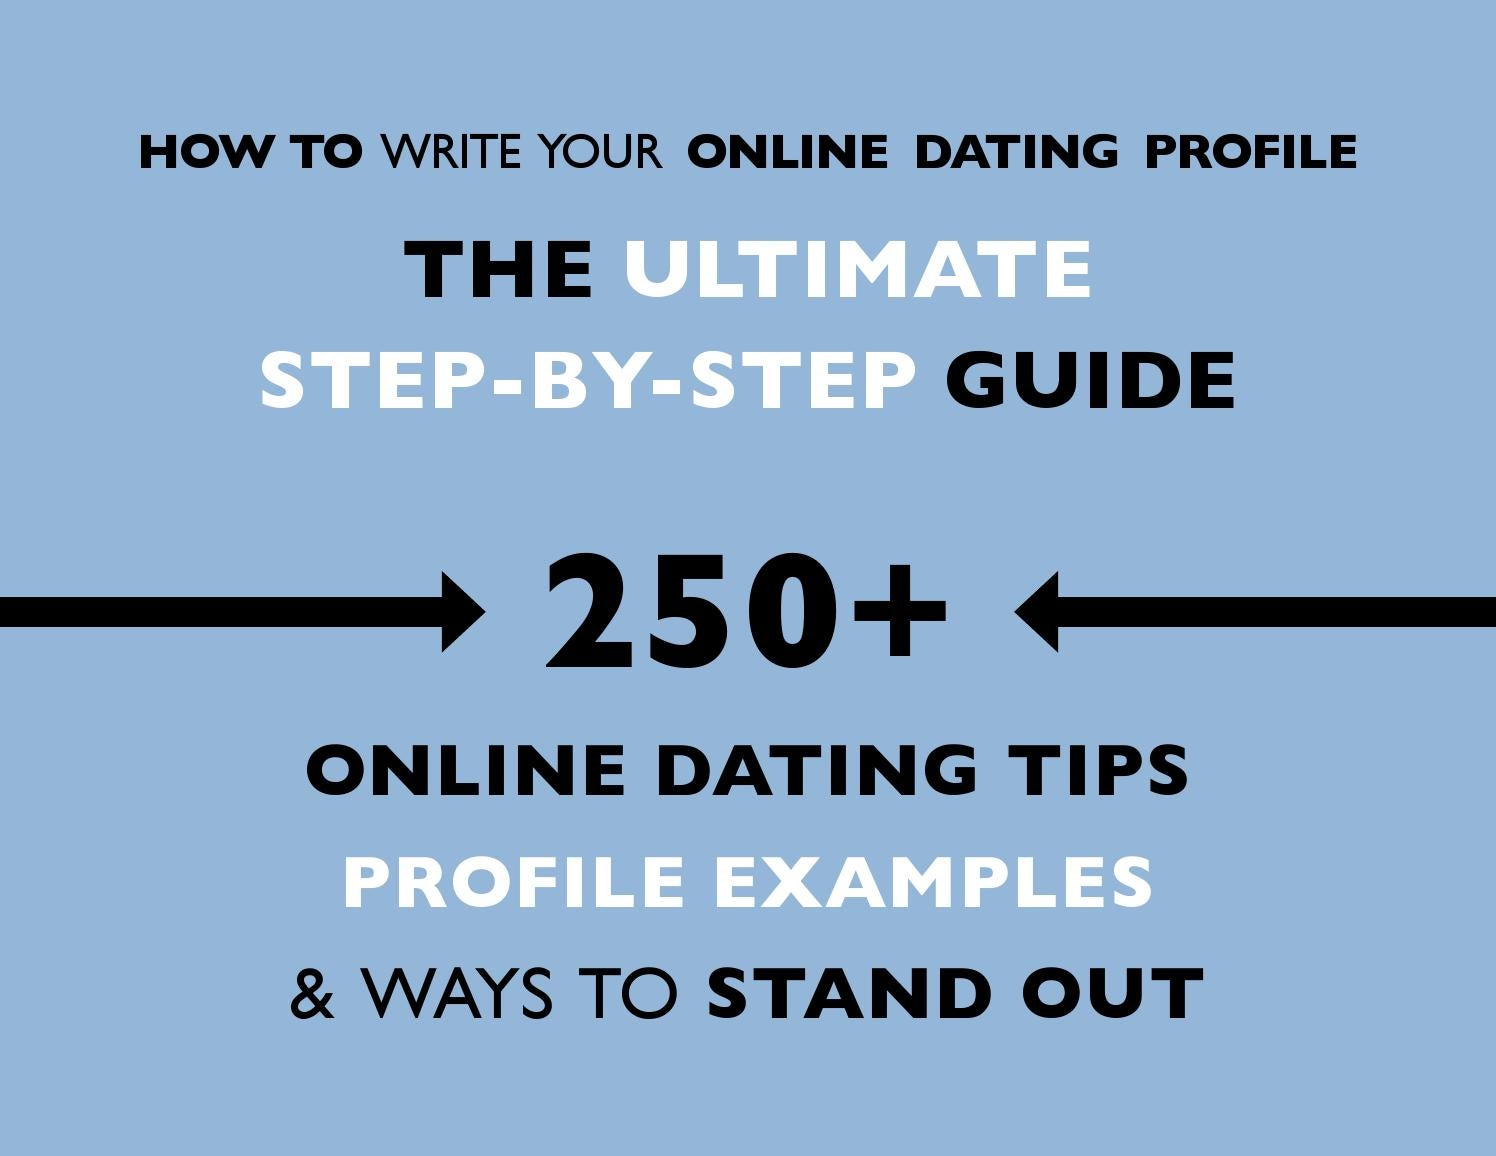 Tips on writing your online dating profile